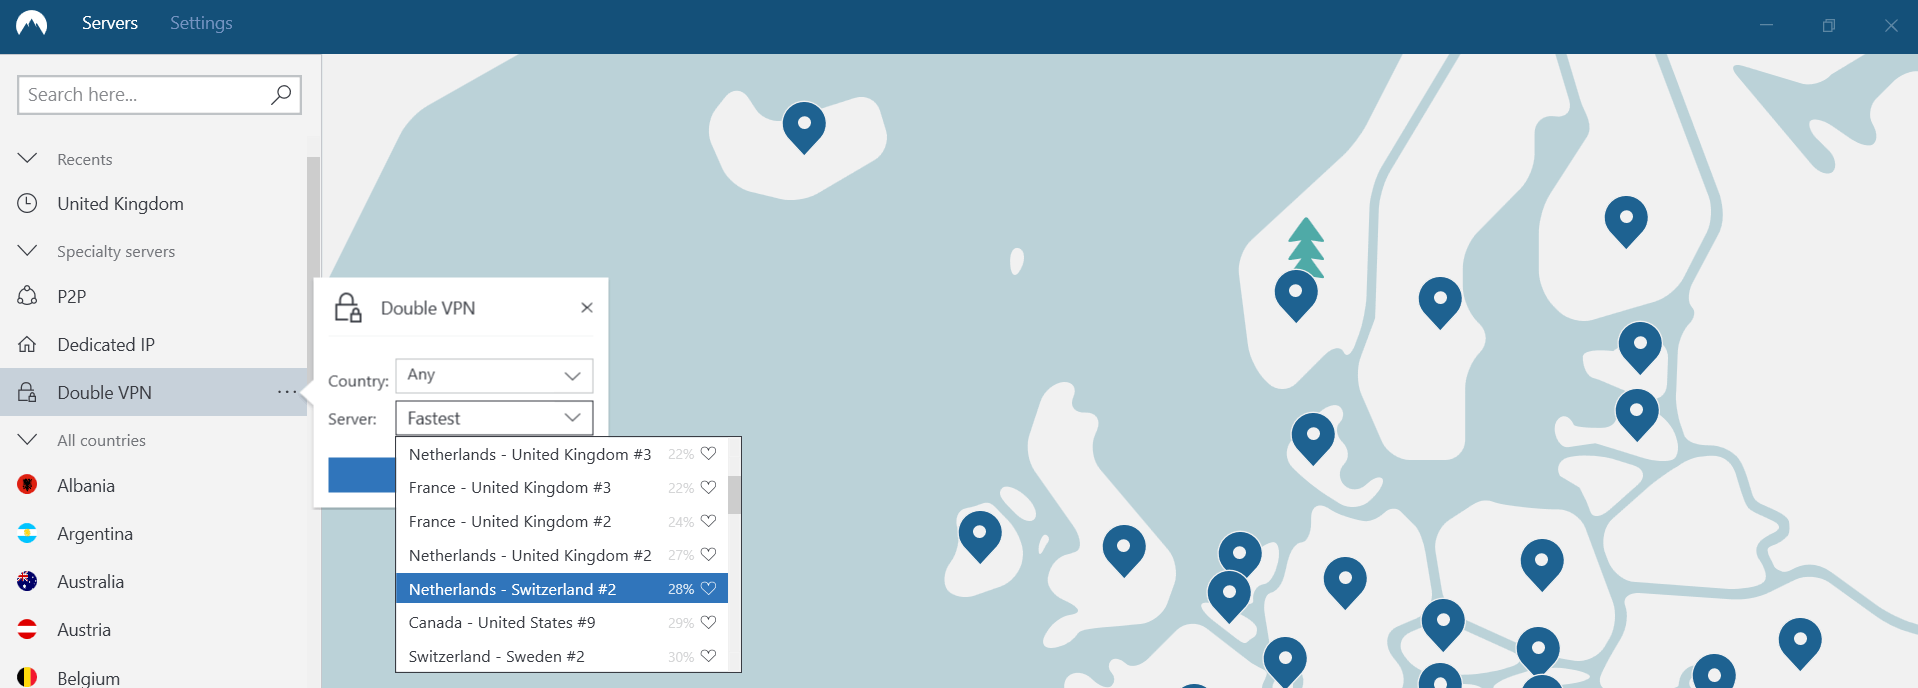 nordvpn double vpn selection